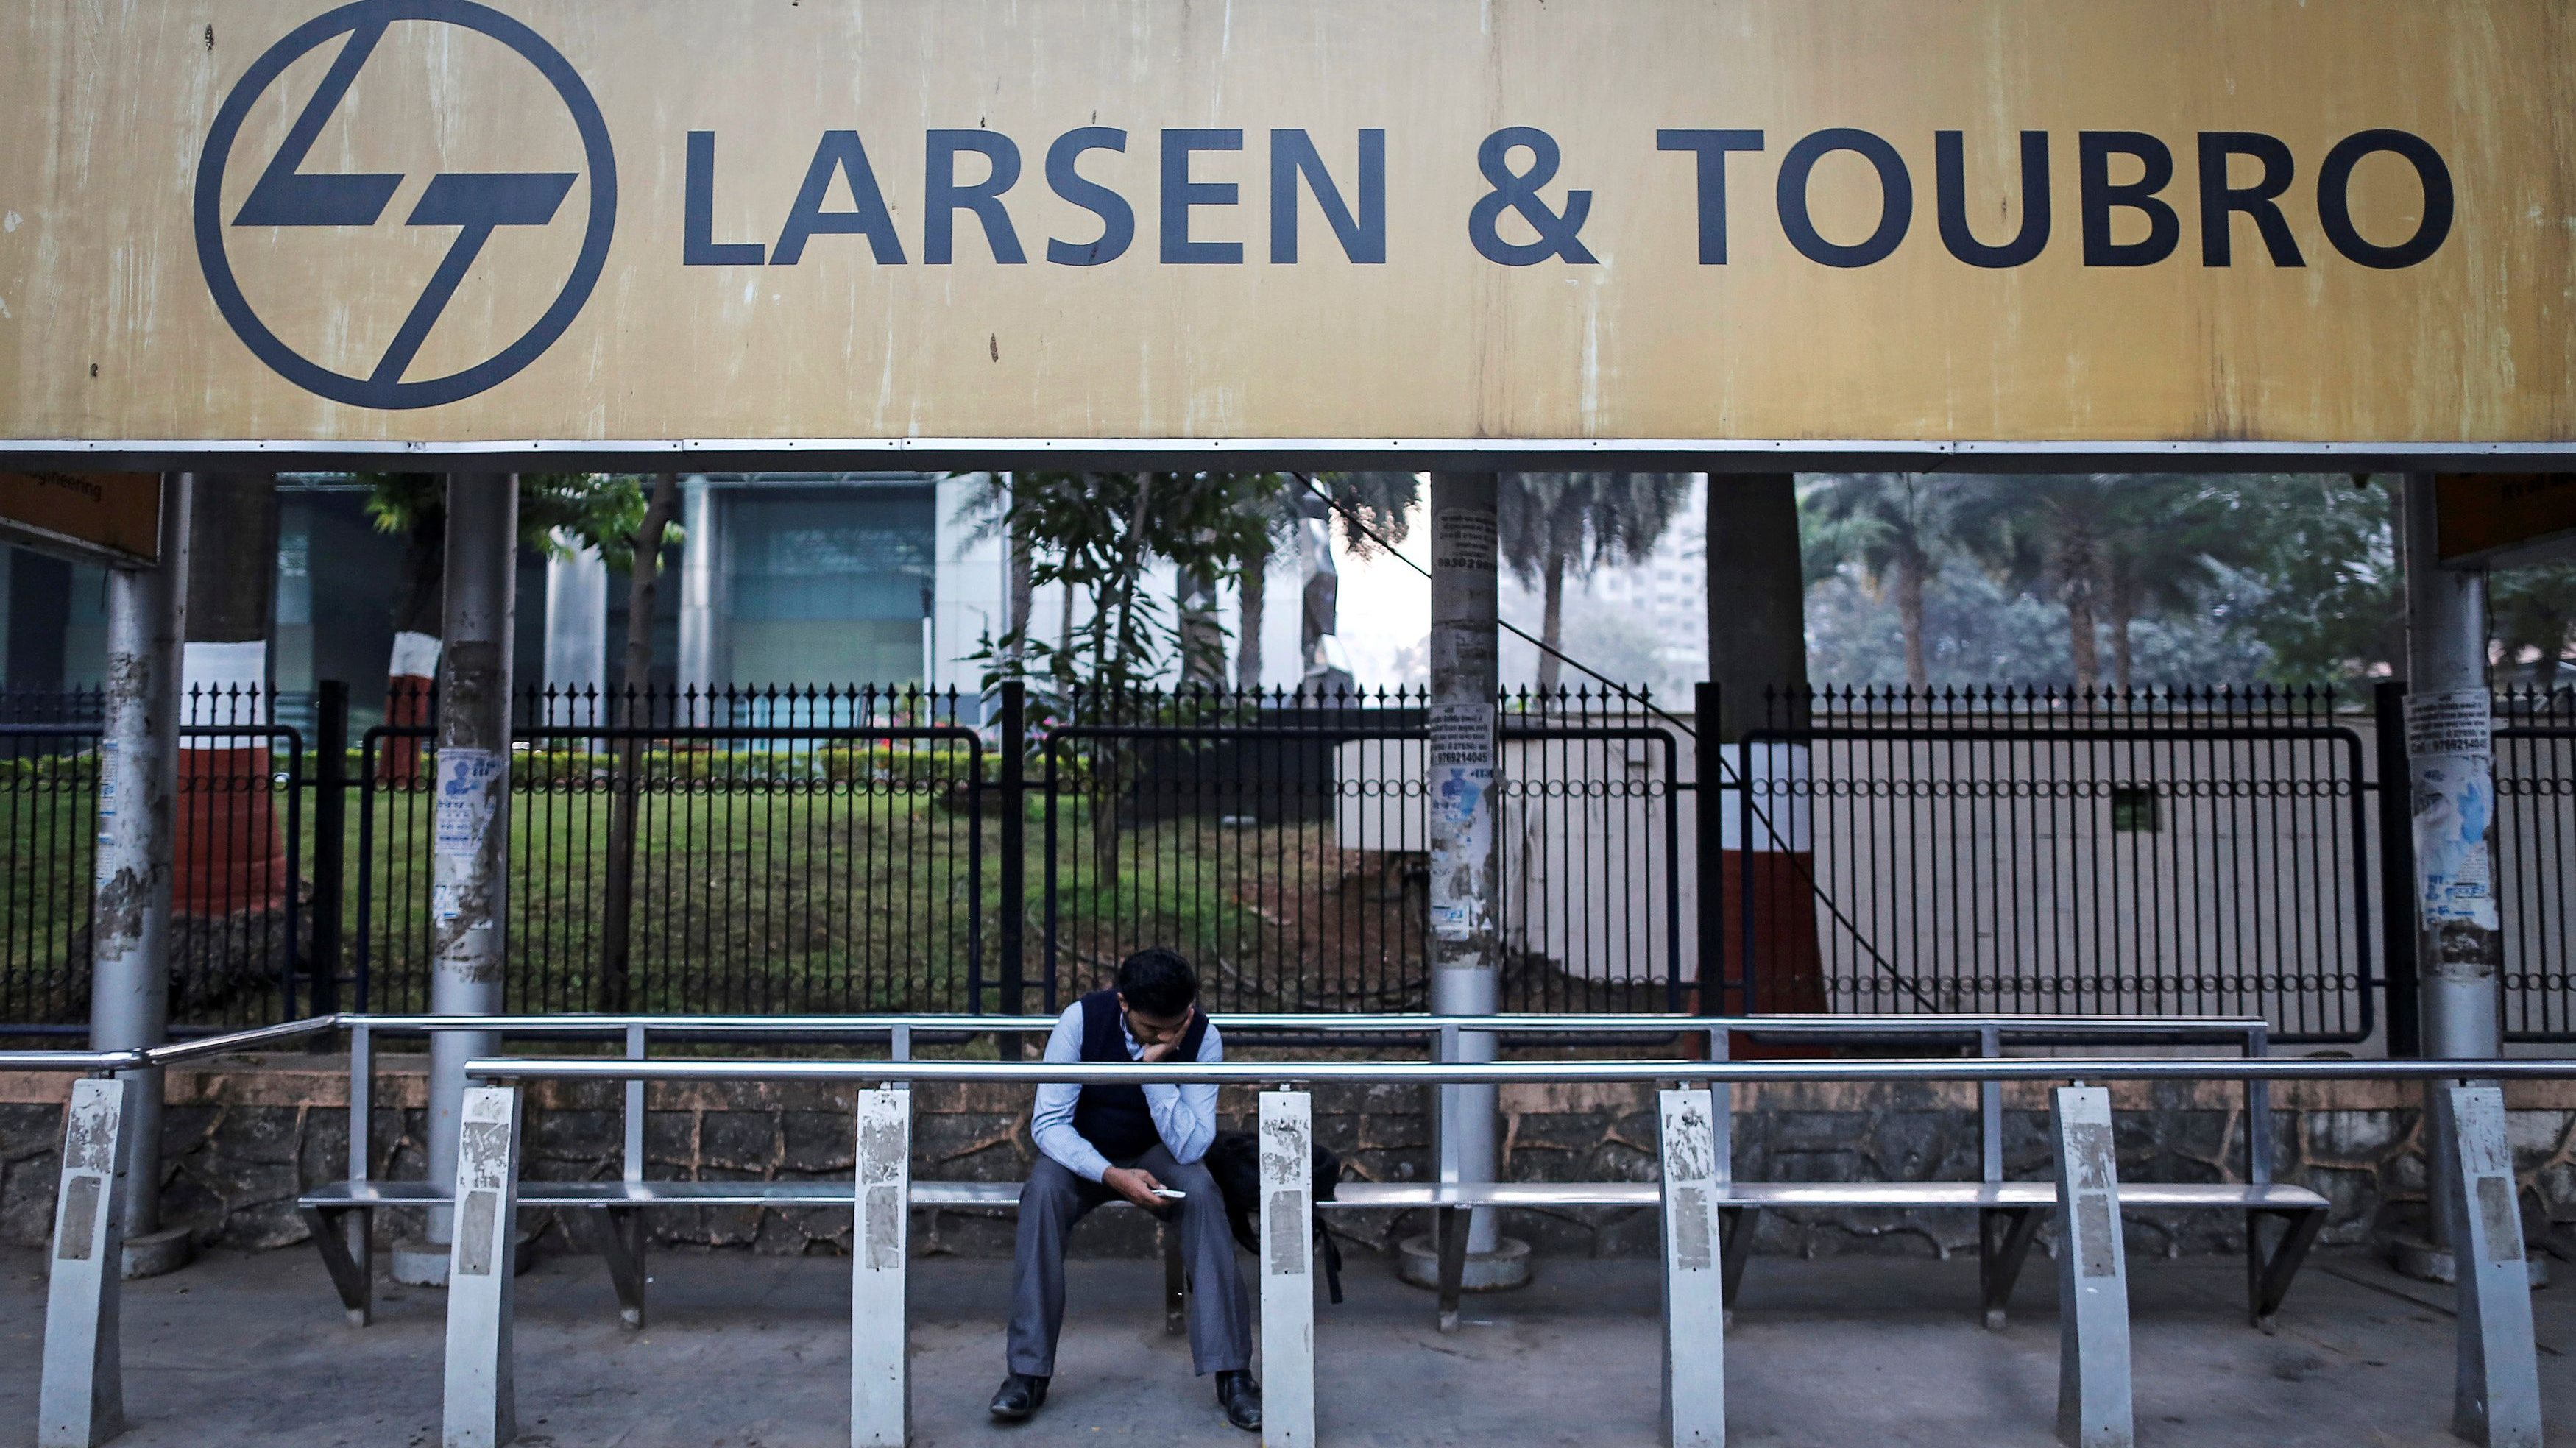 FILE PHOTO: A man waits at a bus-stop with an advertisement of Larsen & Toubro outside the company's manufacturing unit in Mumbai